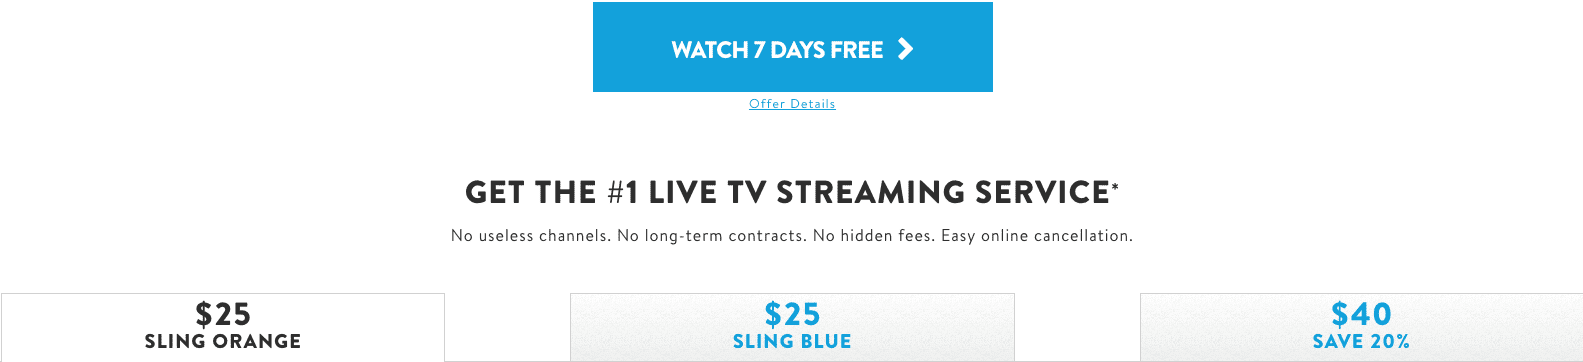 Sling TV Subscription